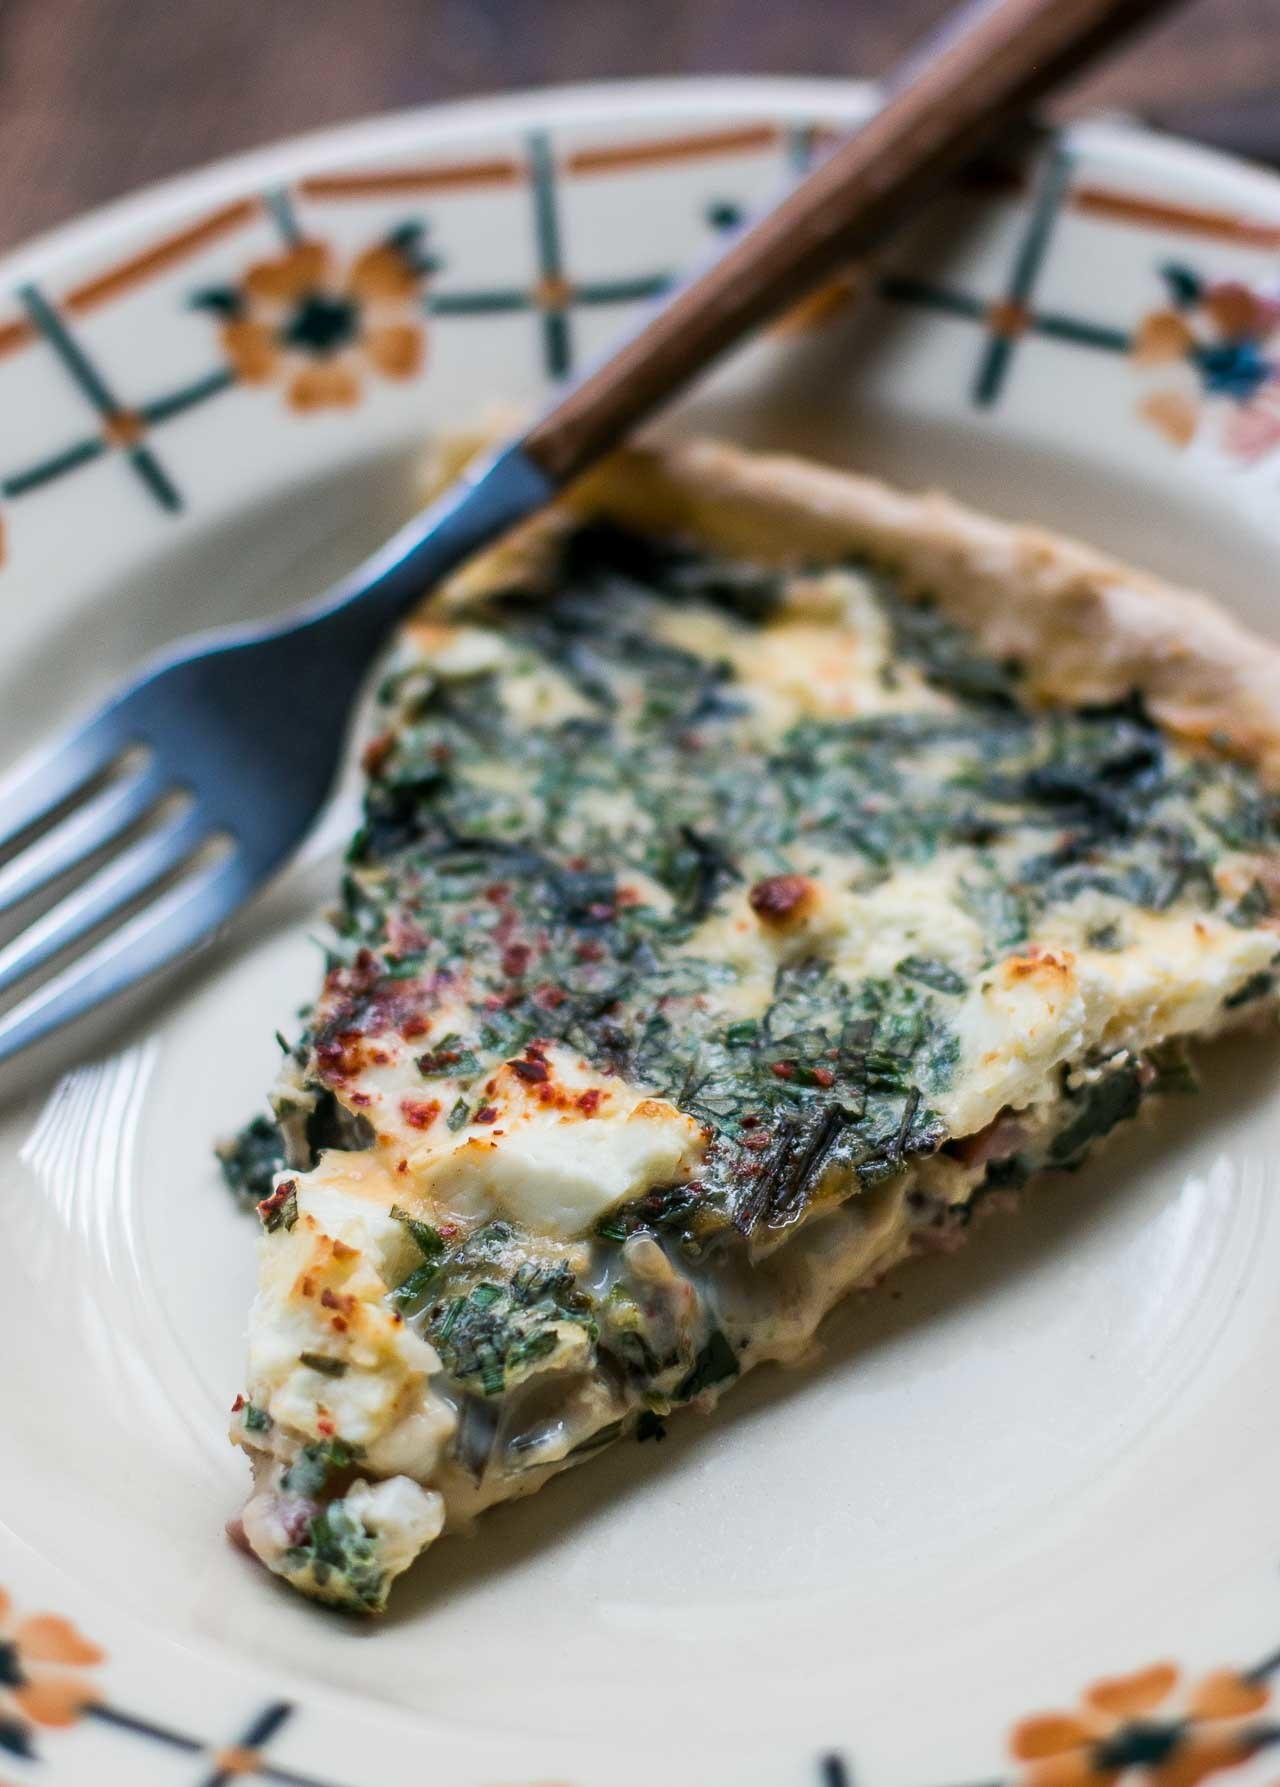 French quiche with greens, bacon and feta